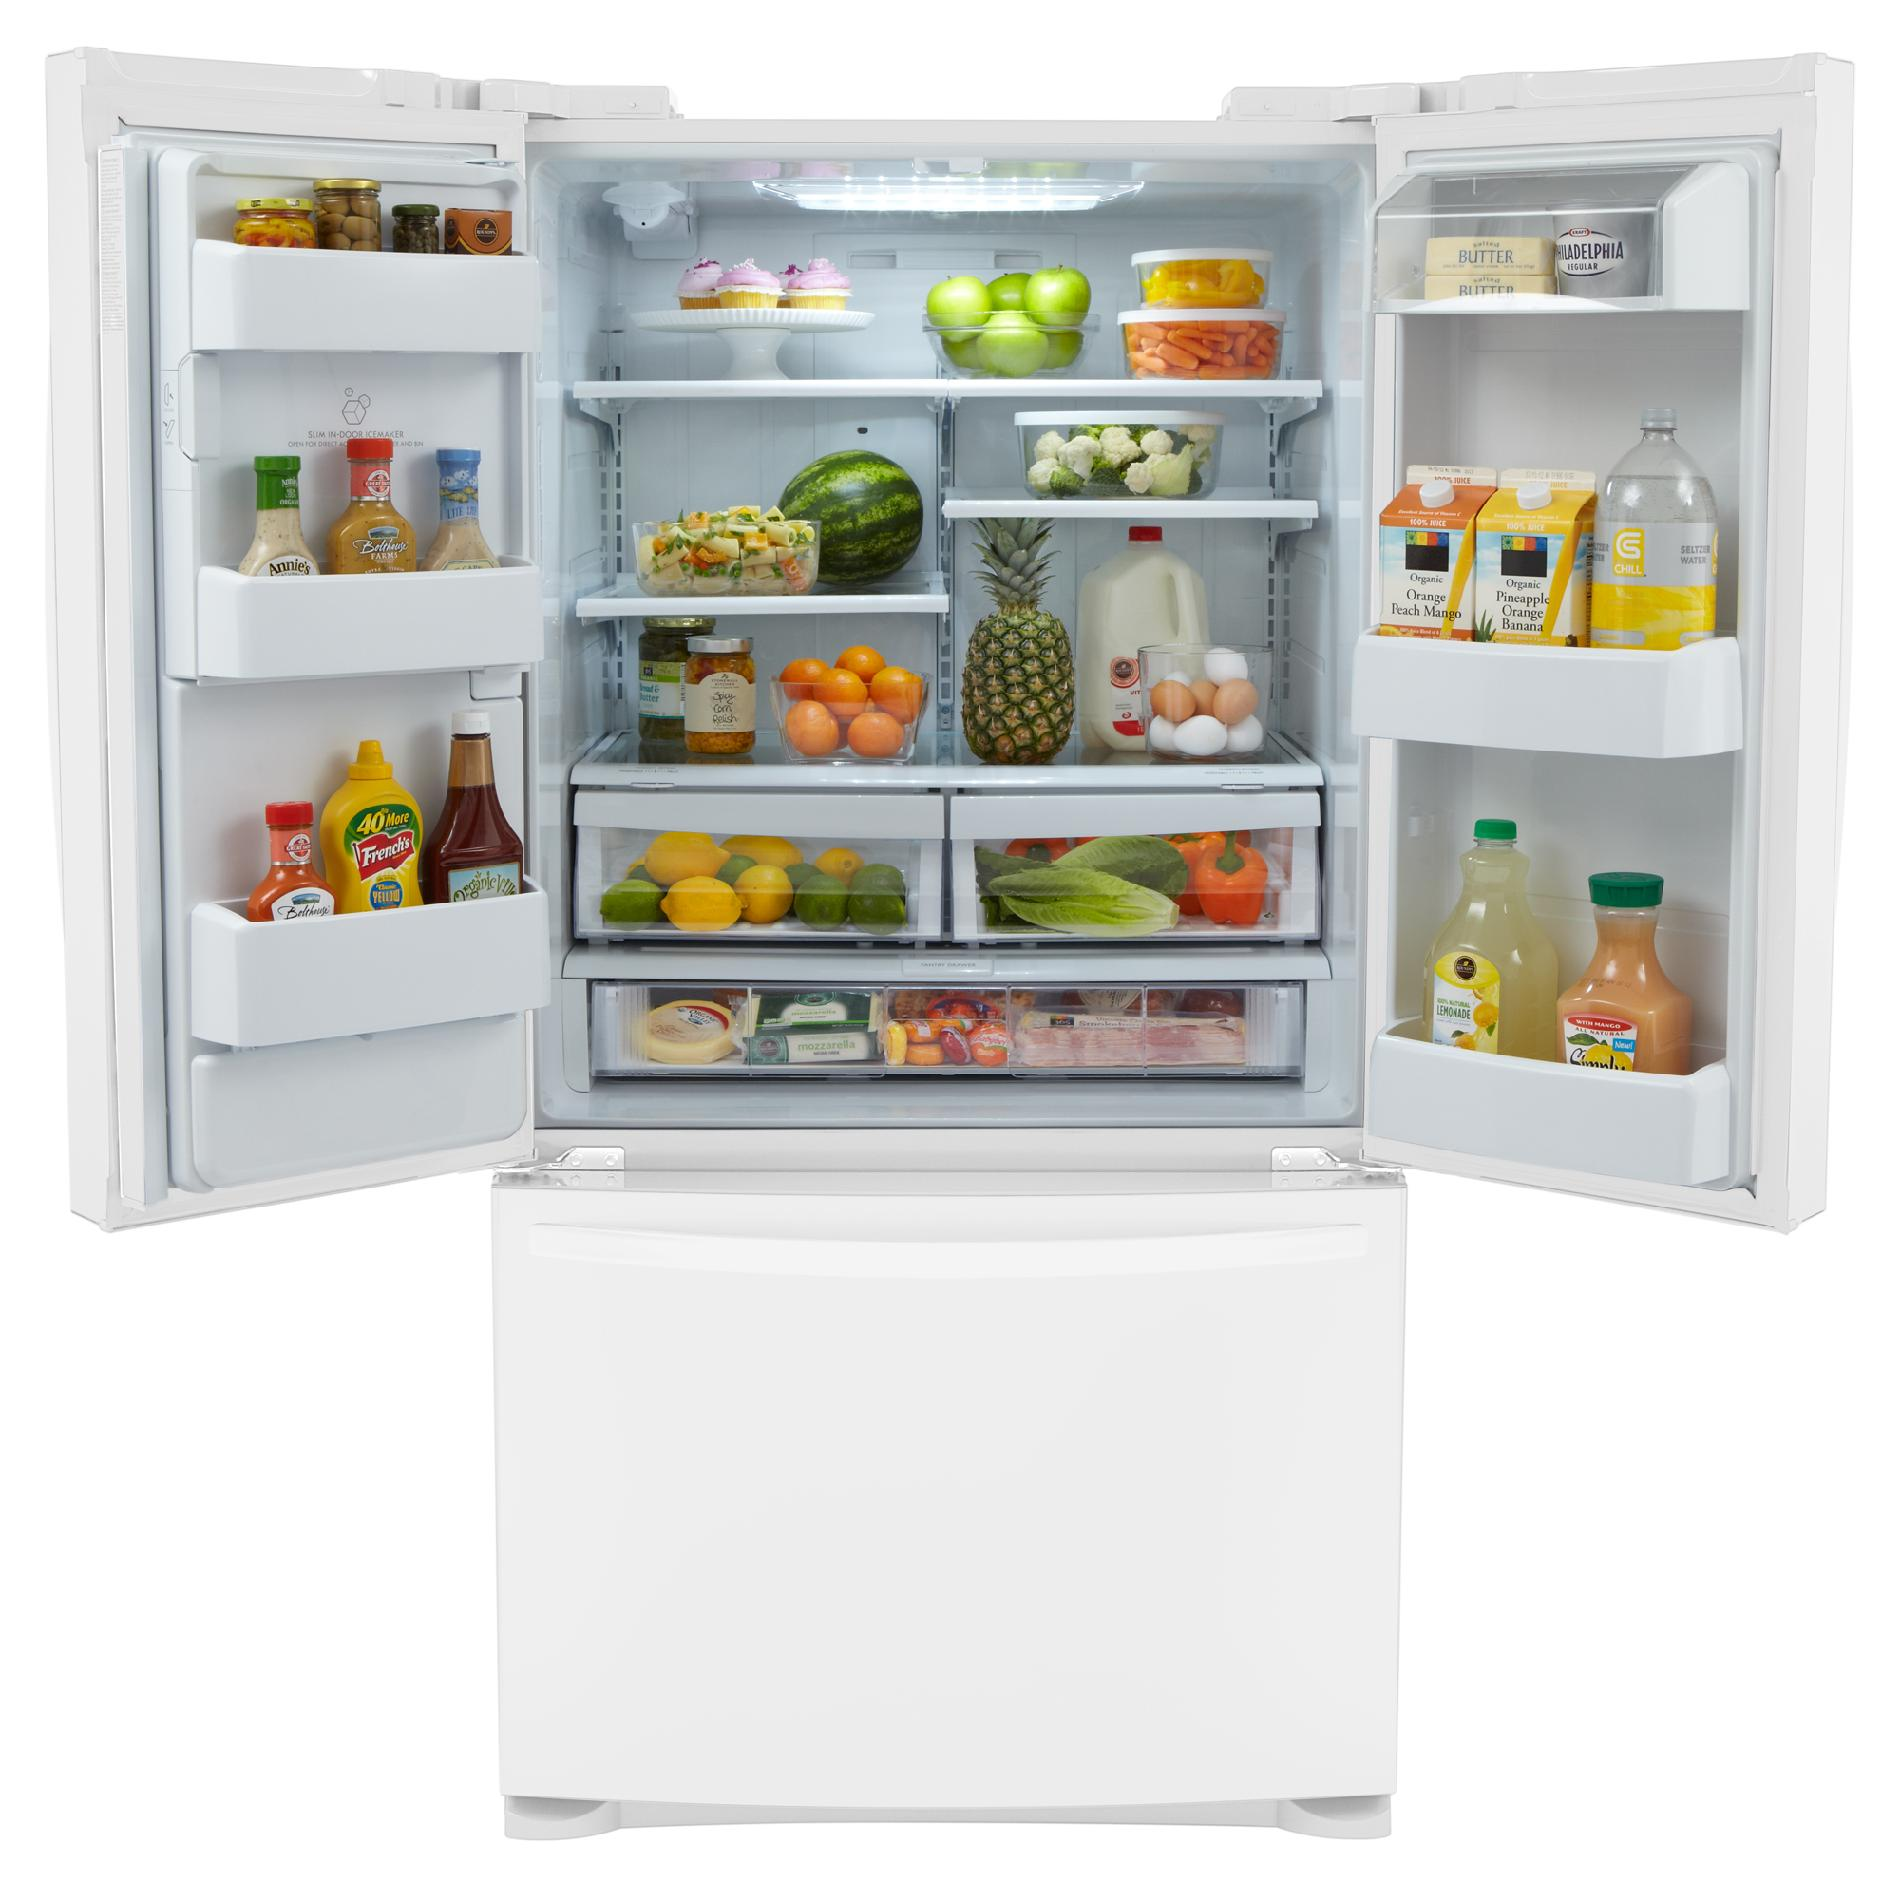 Kenmore 25 cu. ft. French Door Bottom-Freezer Refrigerator -  White